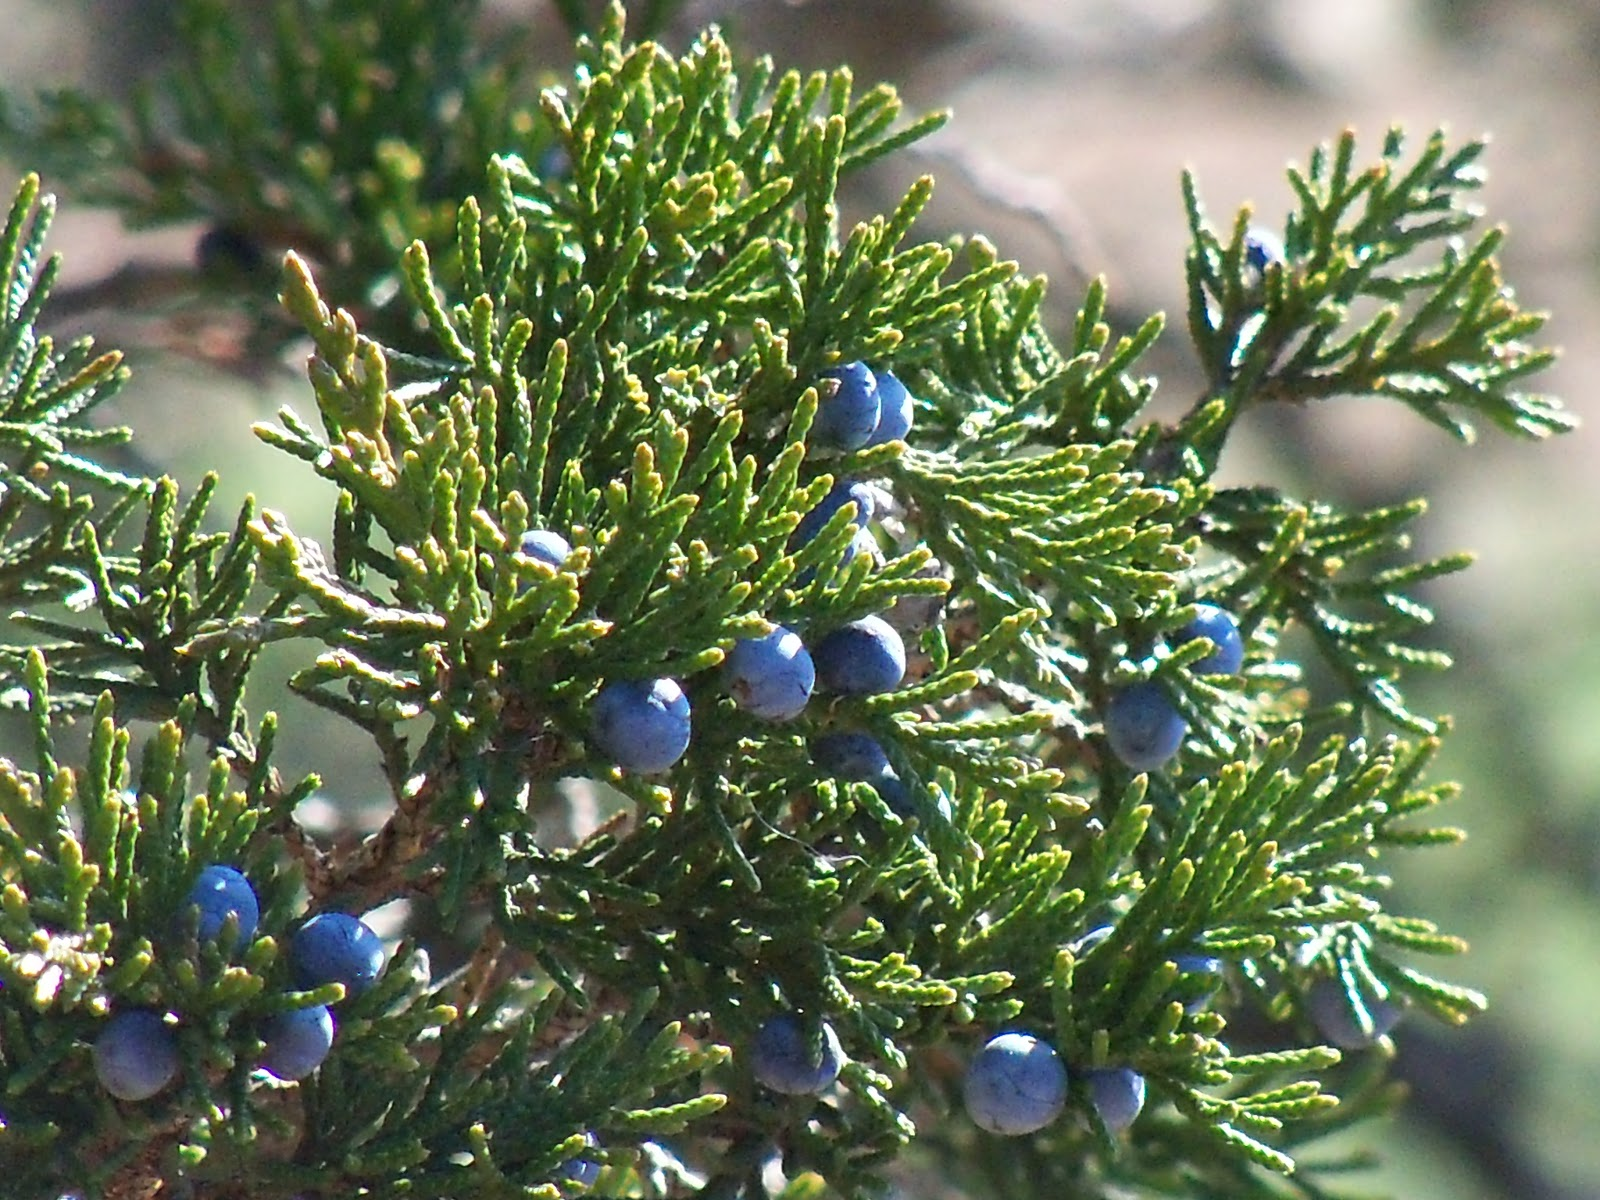 Plant journeys conifer tree potions solstice medicine for The juniper